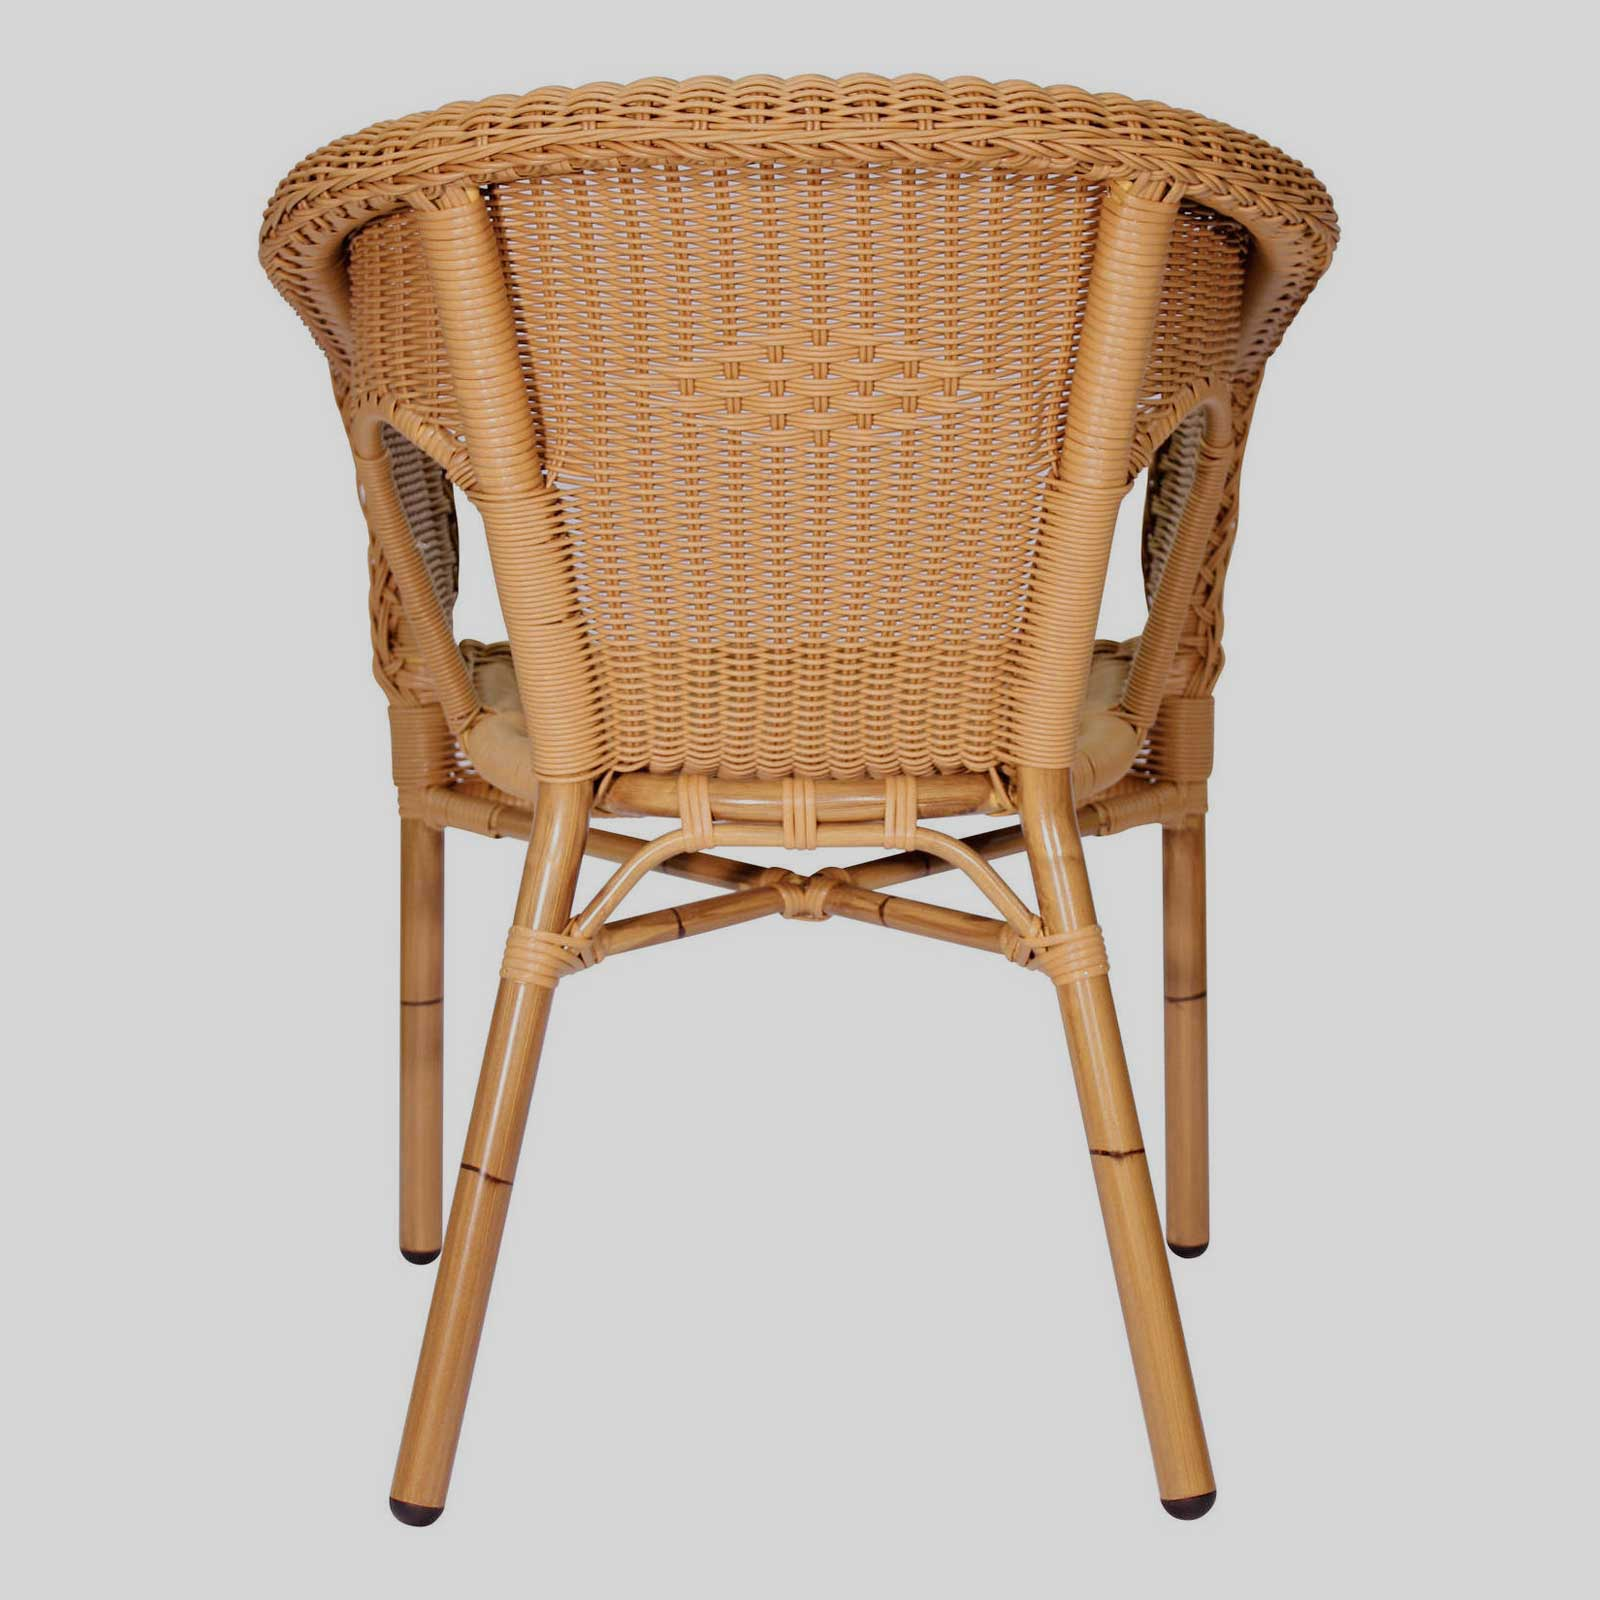 Bamboo Outdoor Chairs Images Deck Decorating Gardening